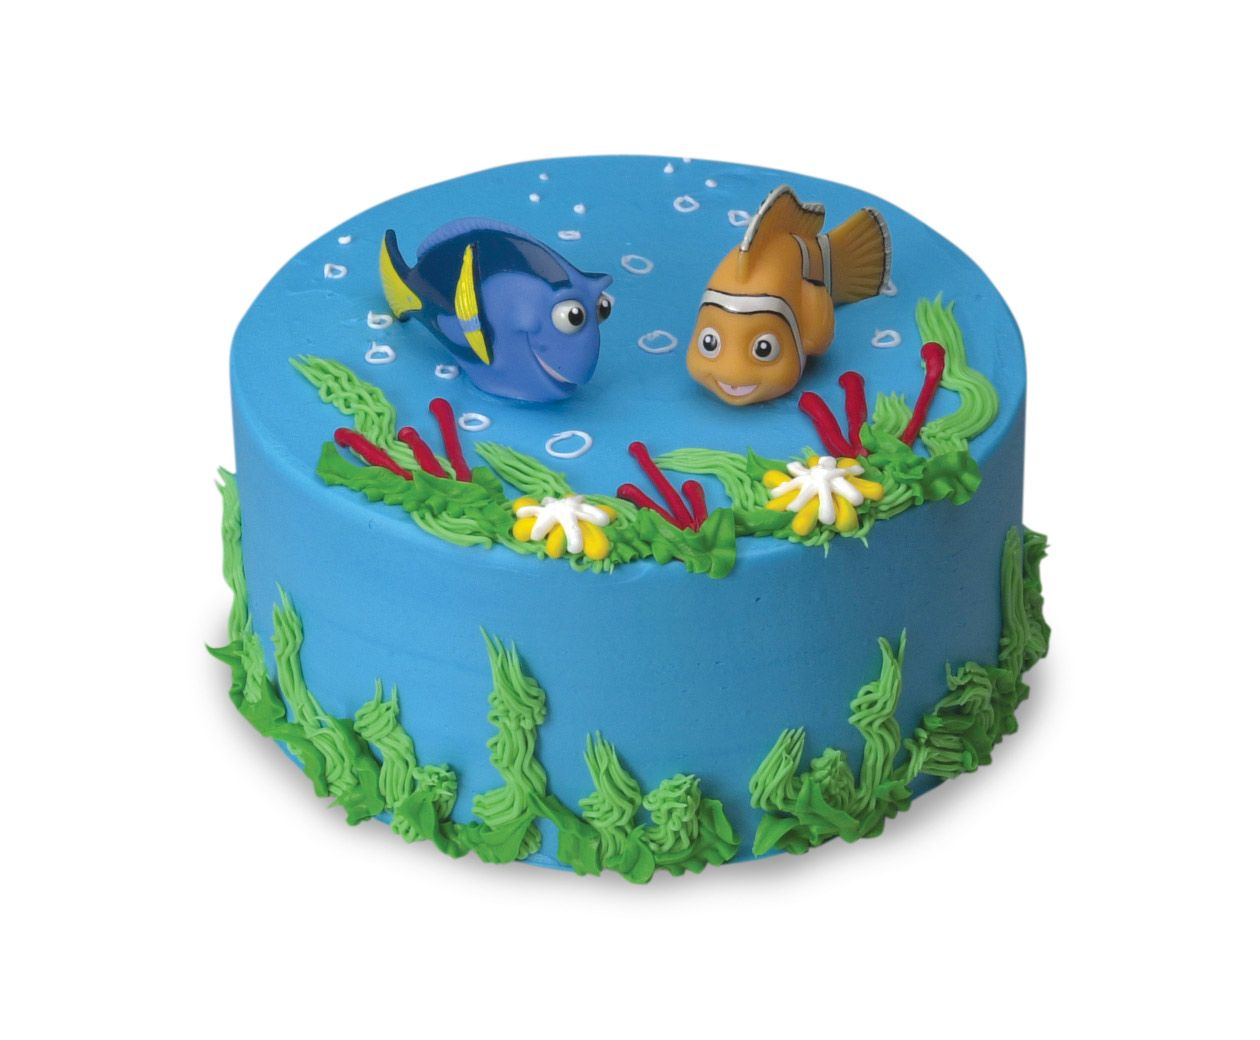 Finding Nemo Ice Cream Cake At Cold Stone Creamery Replace Fish - Nemo fish birthday cake